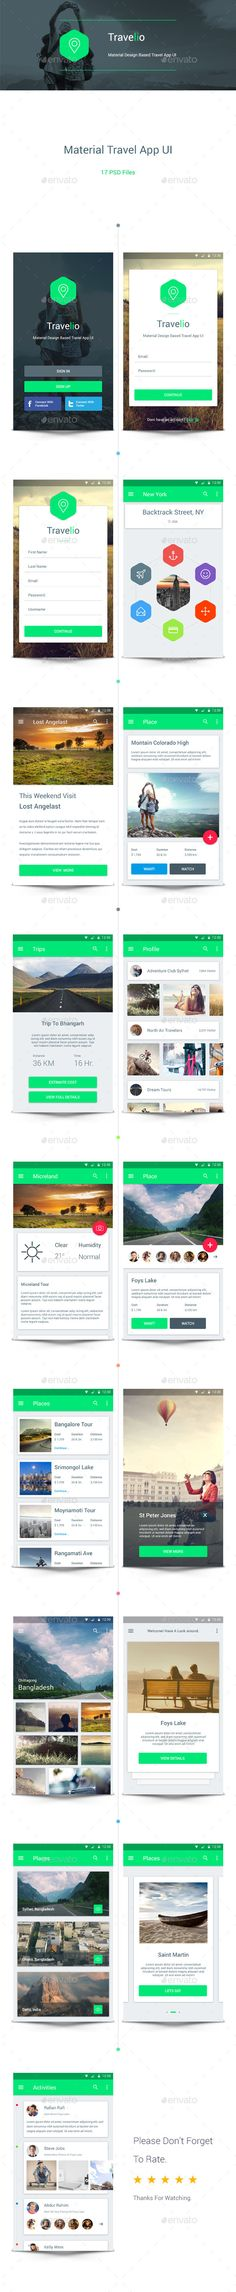 Material Travel App UI #psd #userinterface Download: http://graphicriver.net/item/material-travel-app-ui/10550013?ref=ksioks